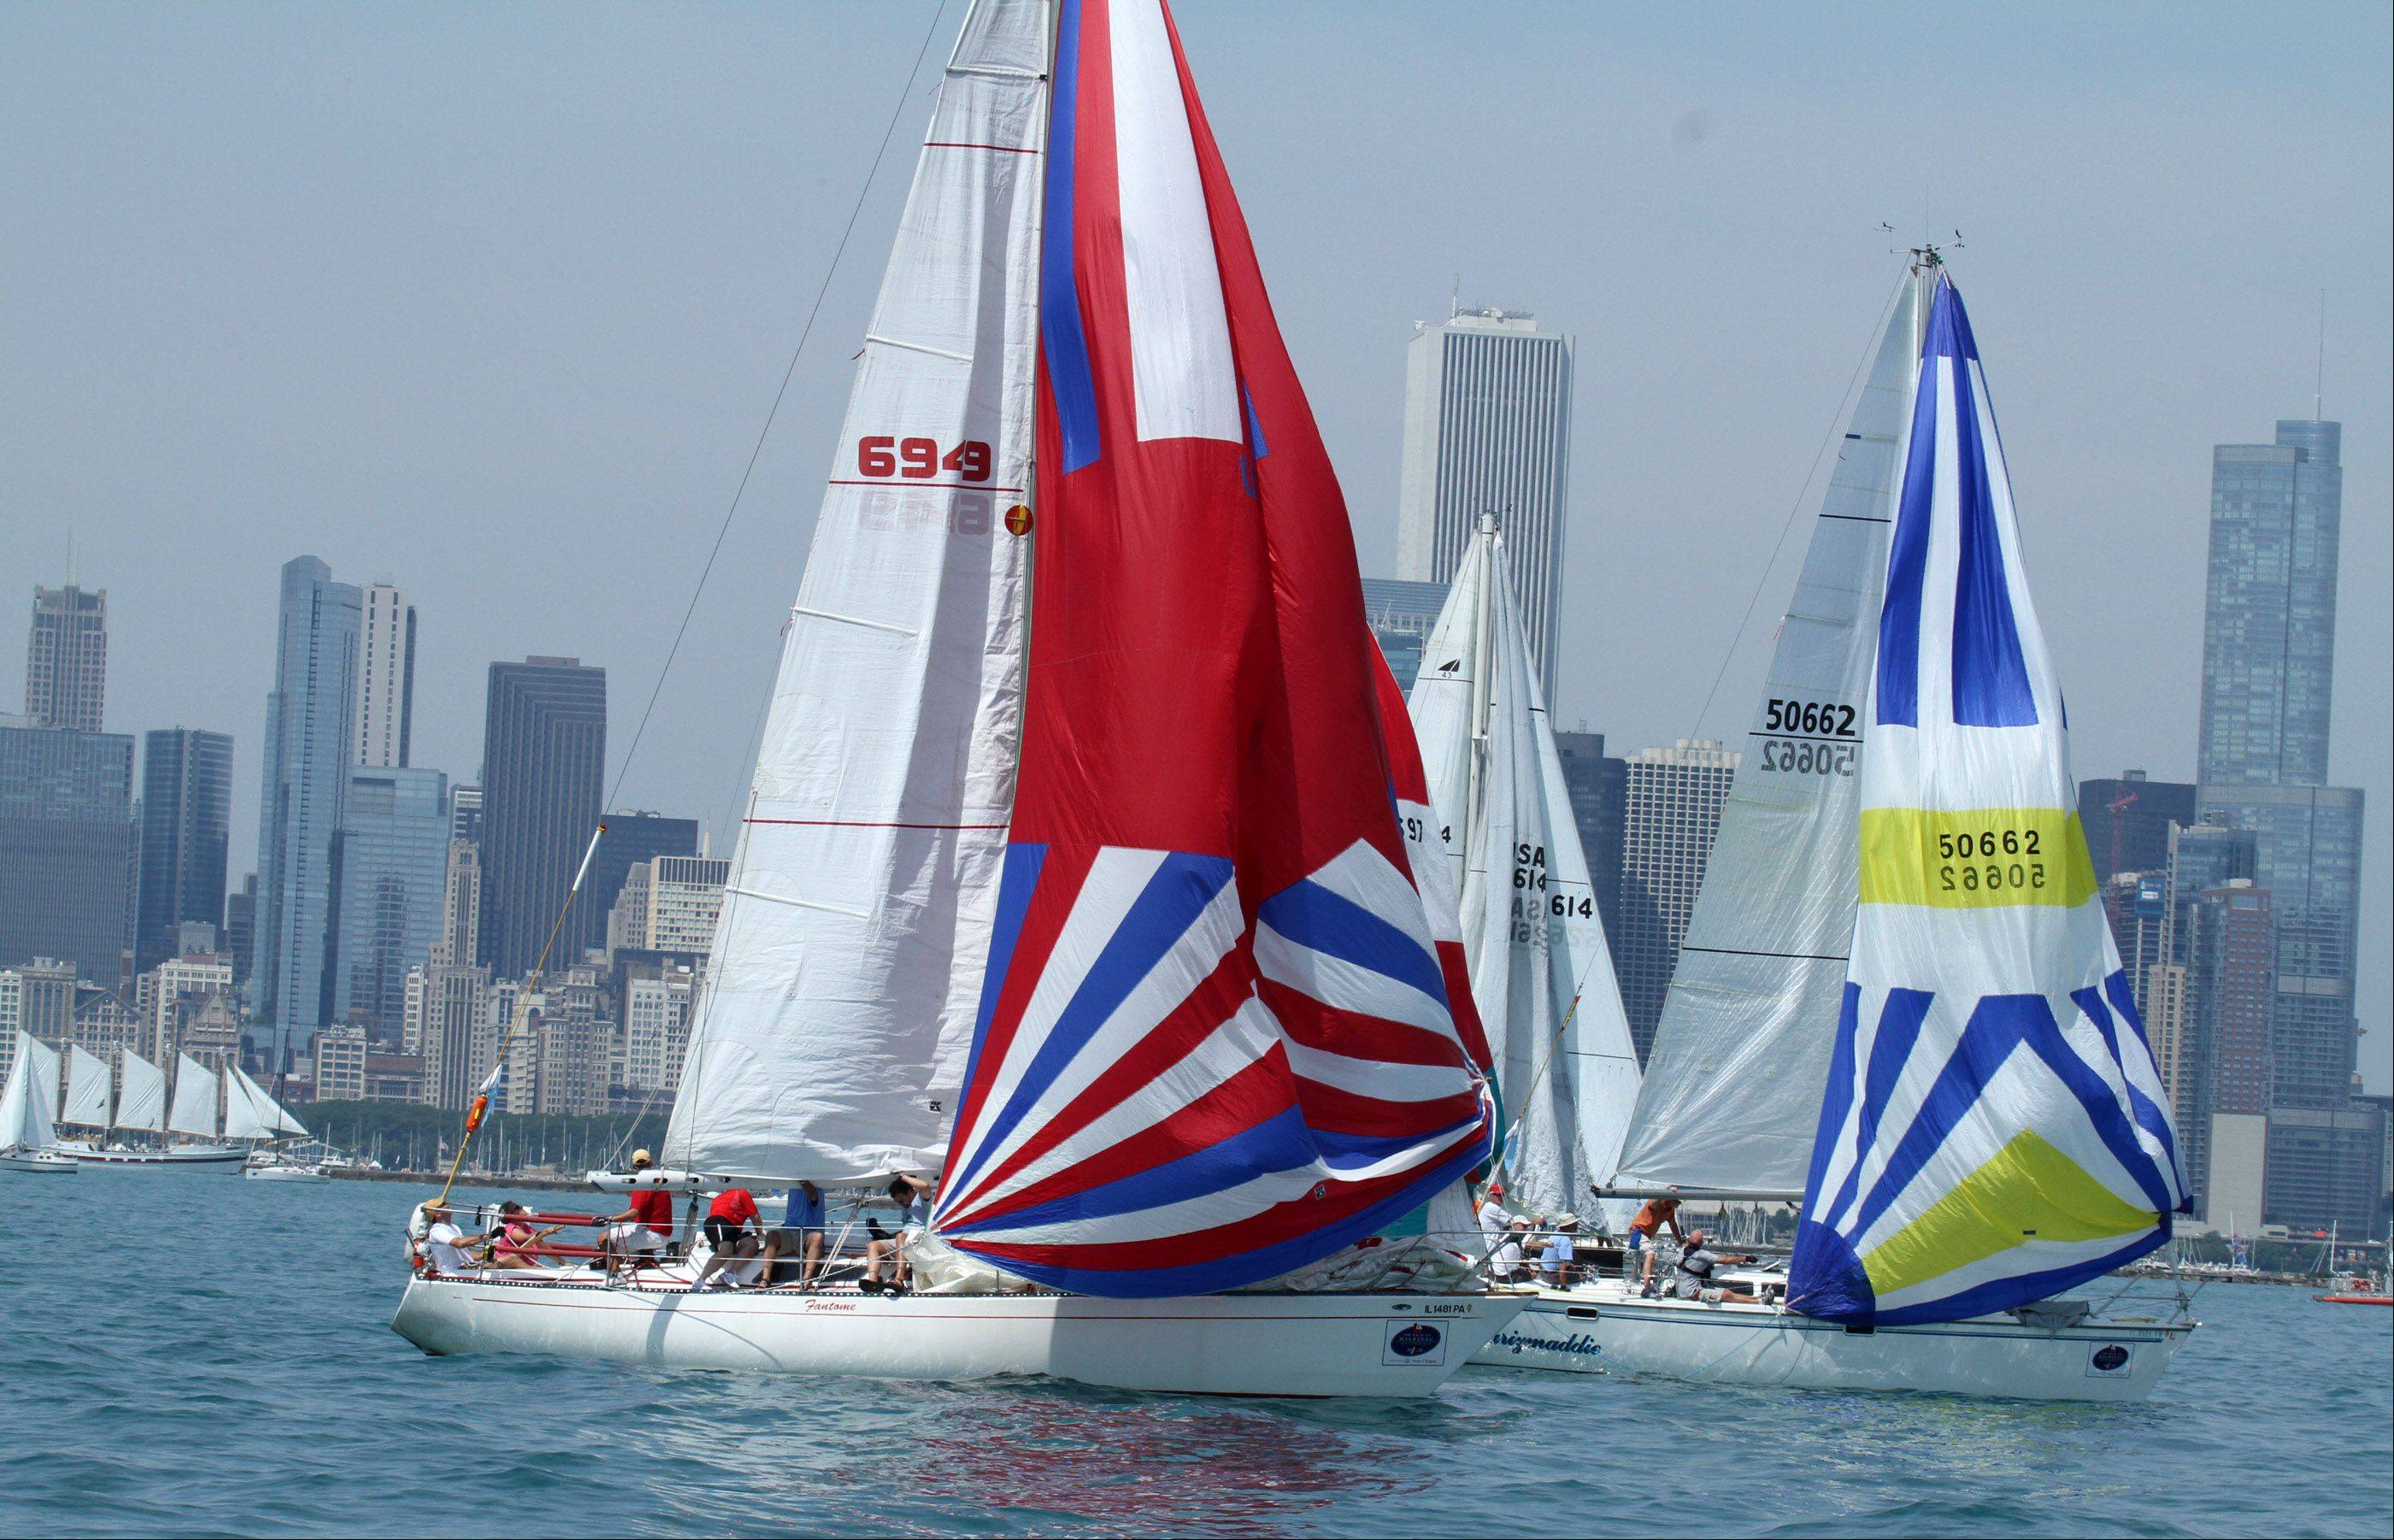 The start of the 104th Chicago Yacht Club Race to Mackinac on Lake Michigan near Chicago on Saturday, July 21.